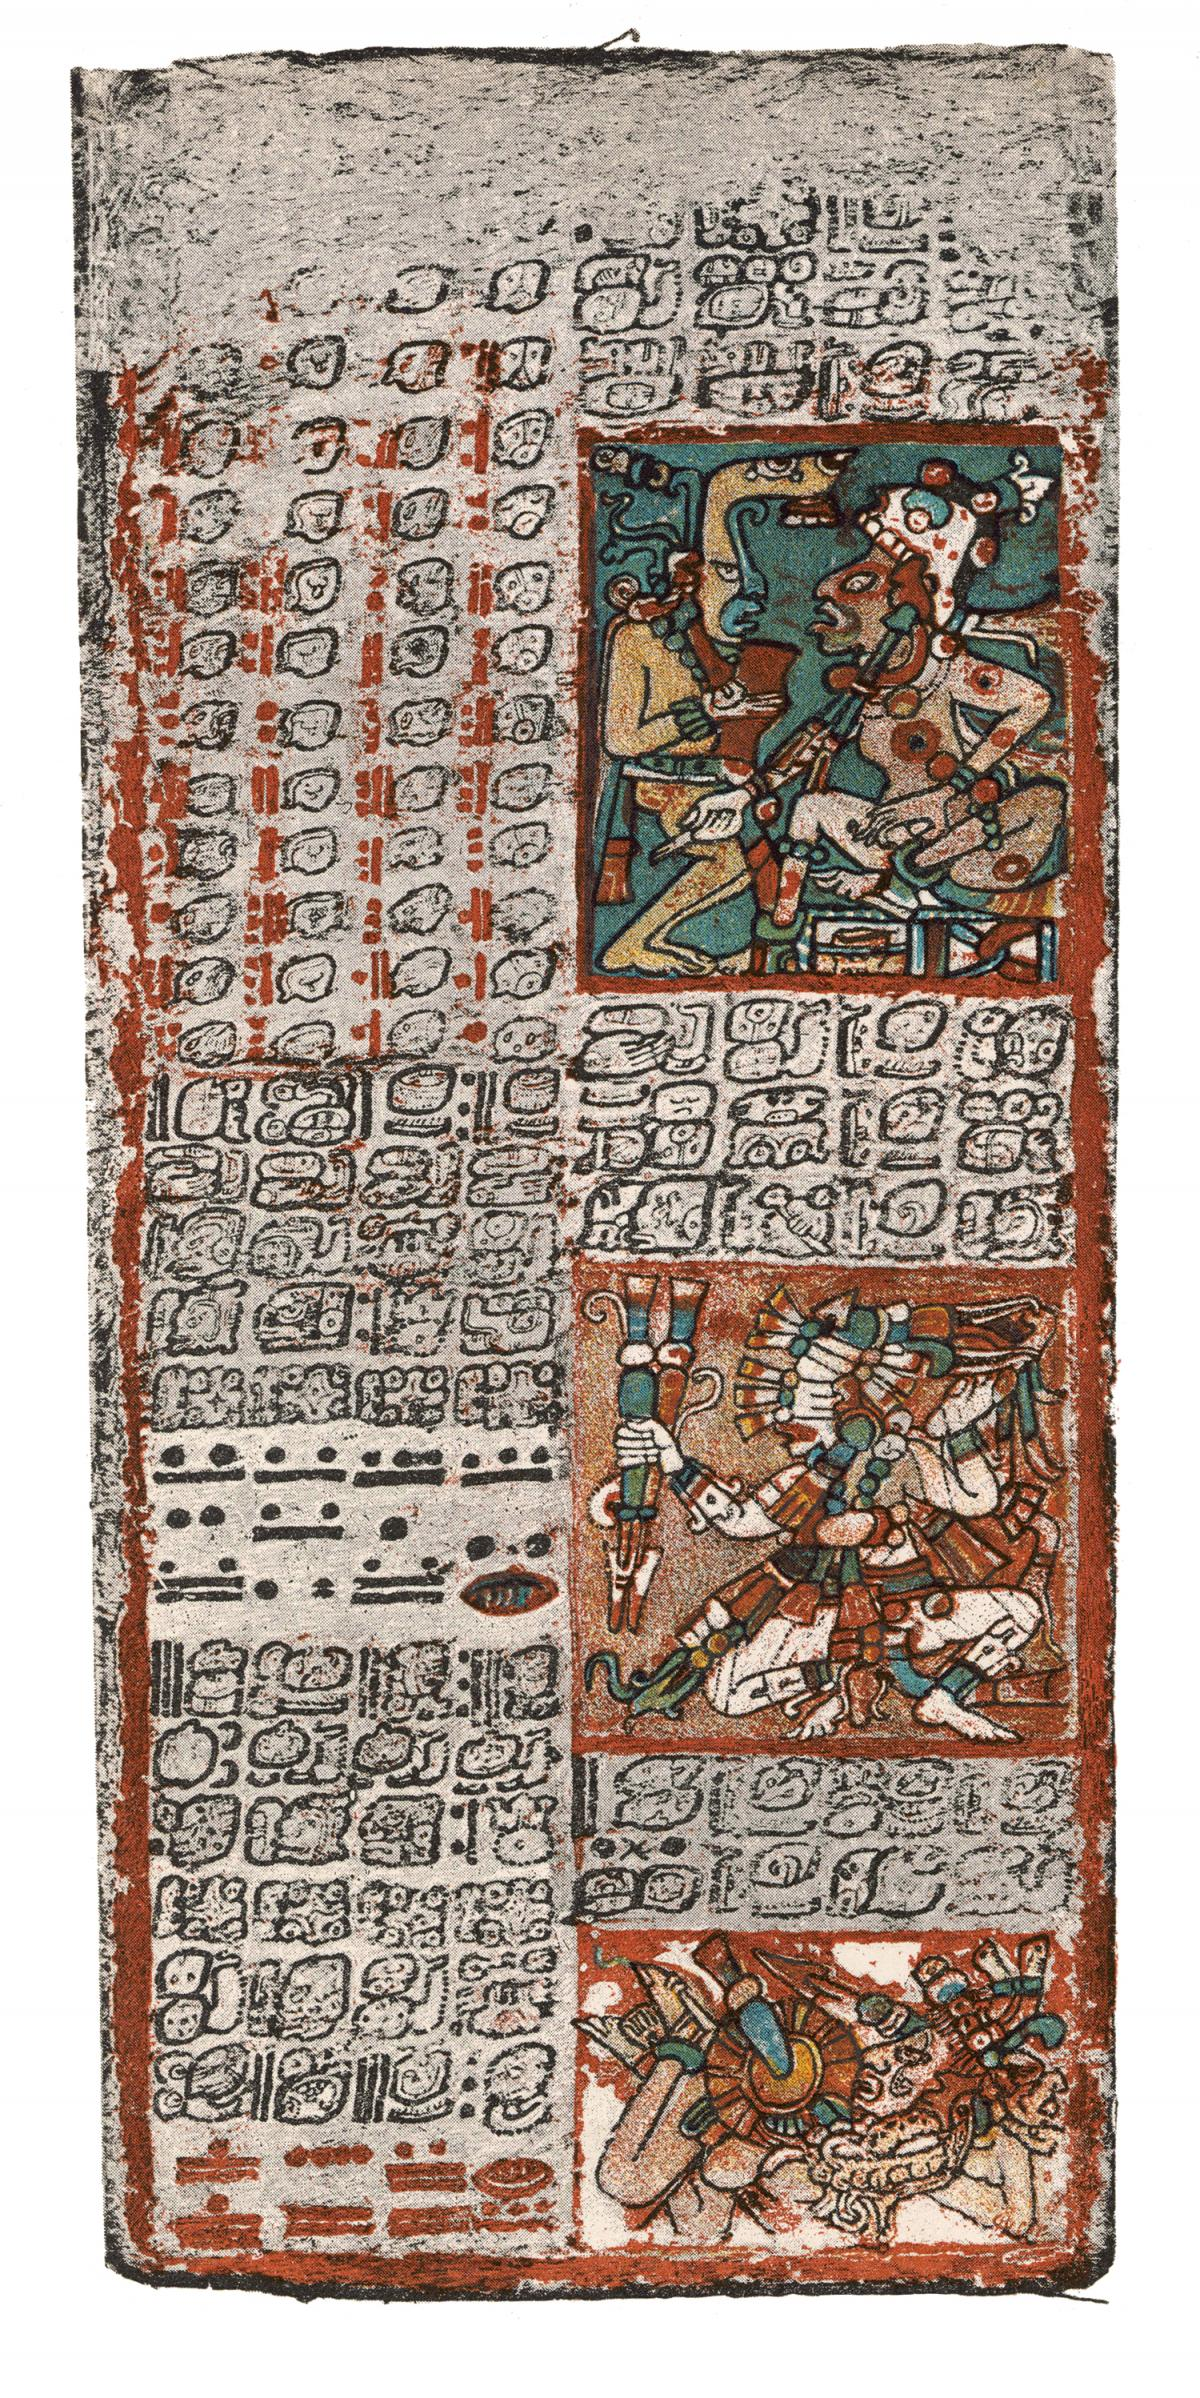 Another section of the Dresden Codex, depicting gods and demons